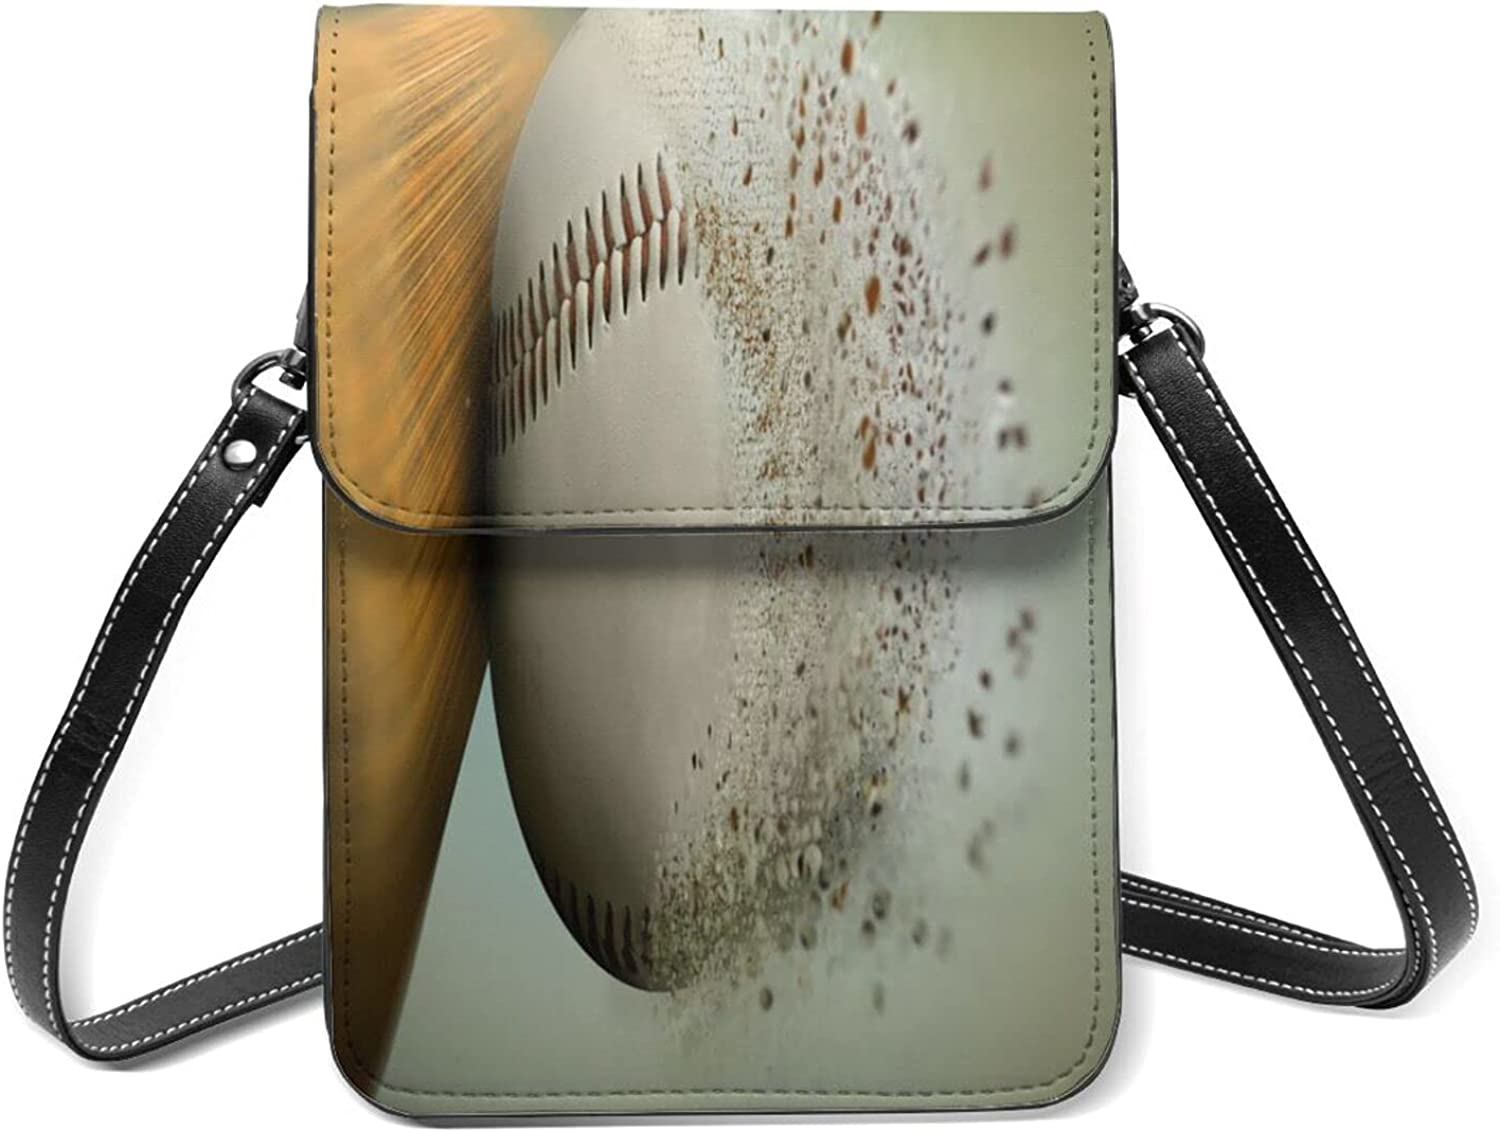 To Break Up safety By Batting Small Phone Cell Lightweight Purse Ranking integrated 1st place W Flip